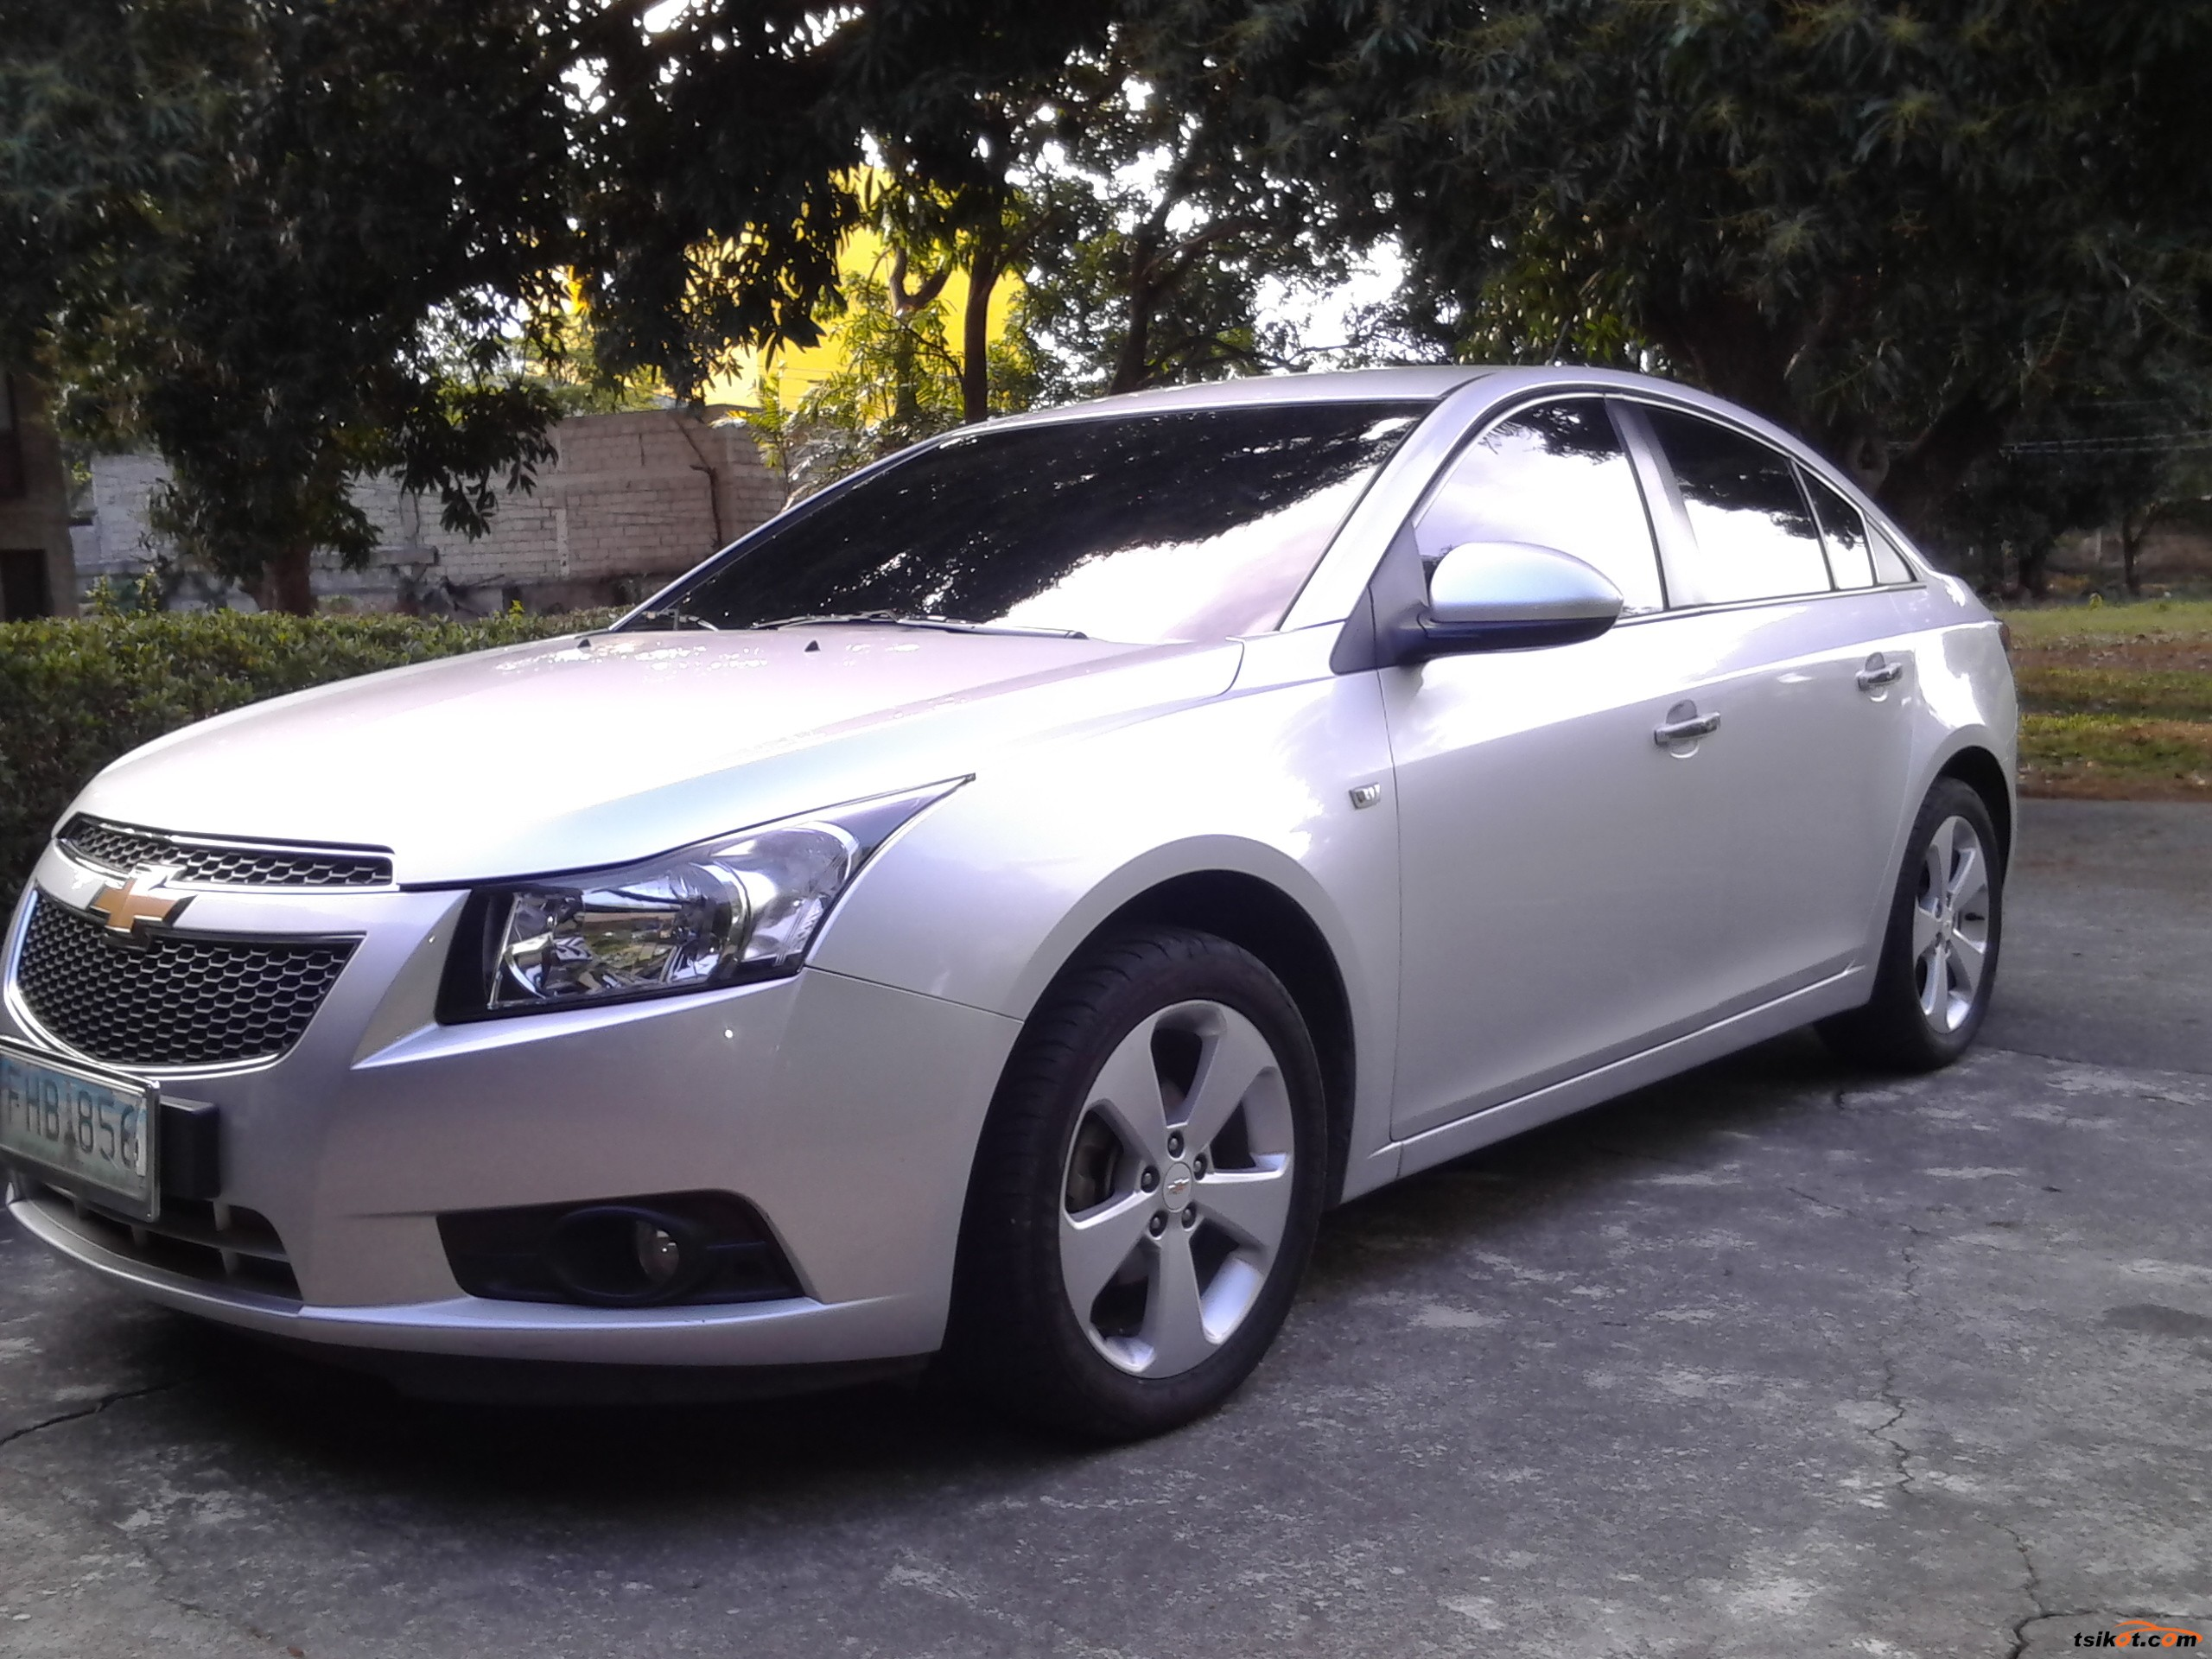 Chevrolet Cruze 2011 Car For Sale Central Visayas